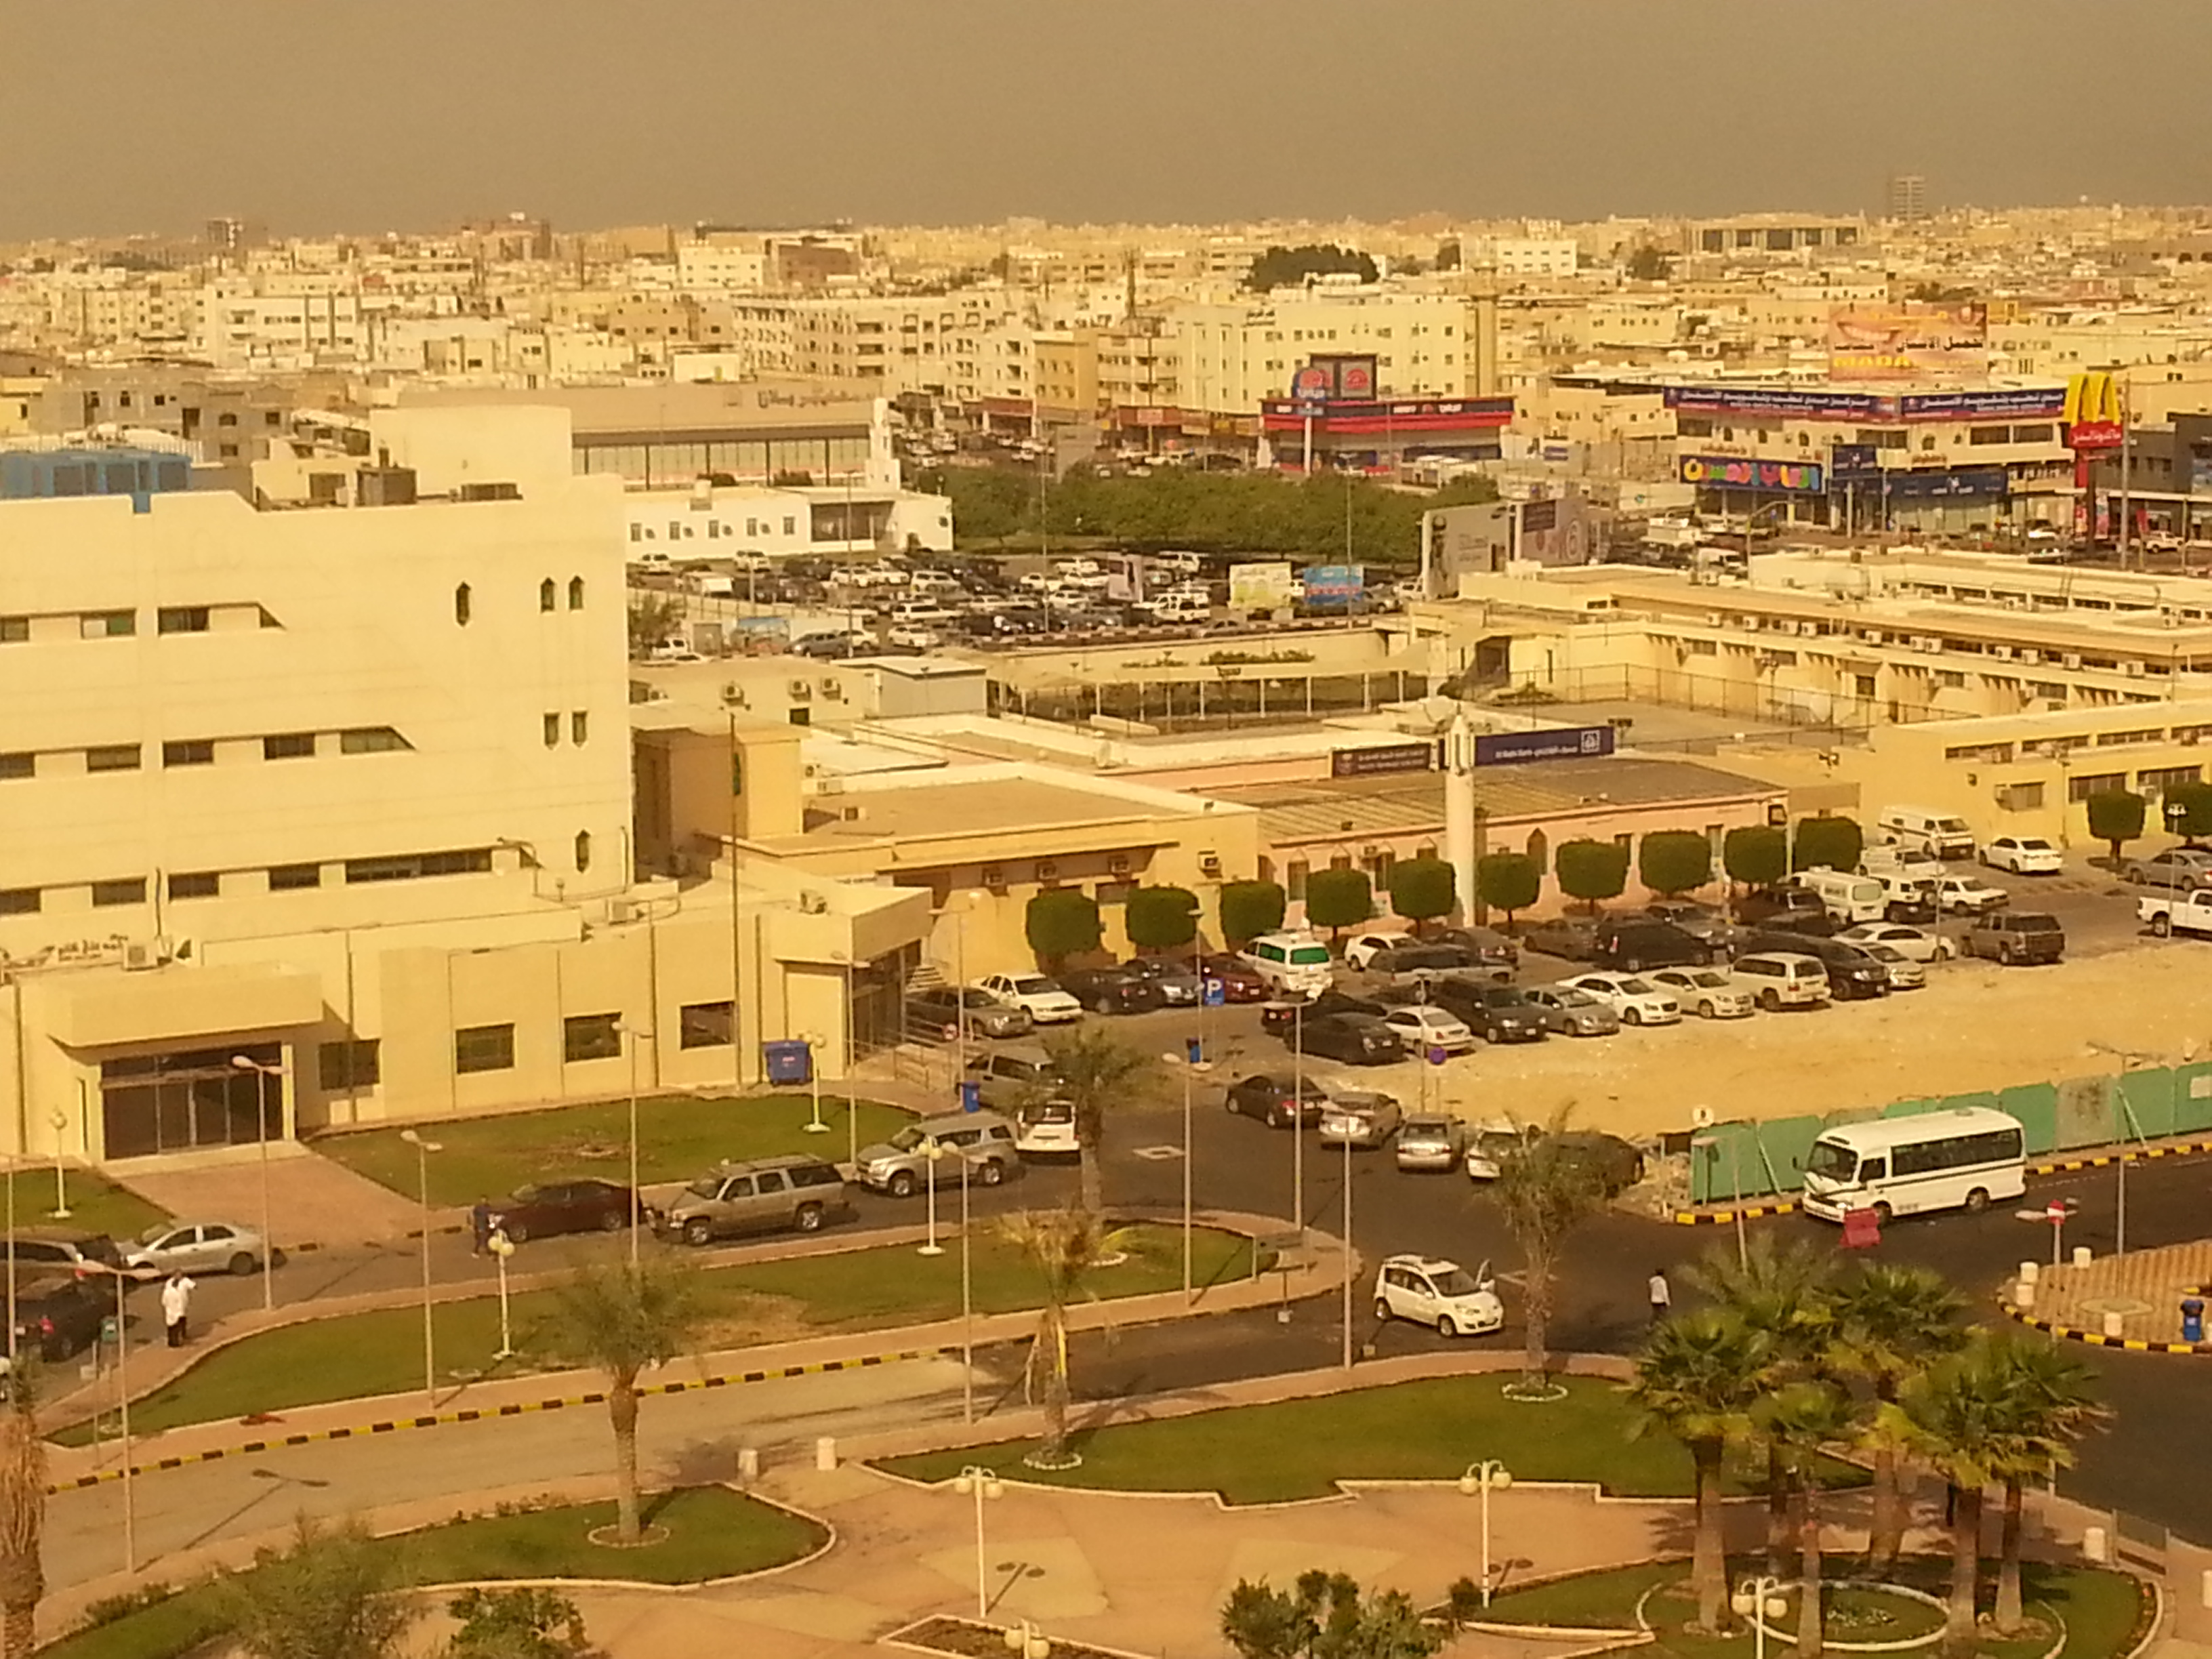 Dammam wikipedia hospitals and medical centersedit publicscrutiny Image collections